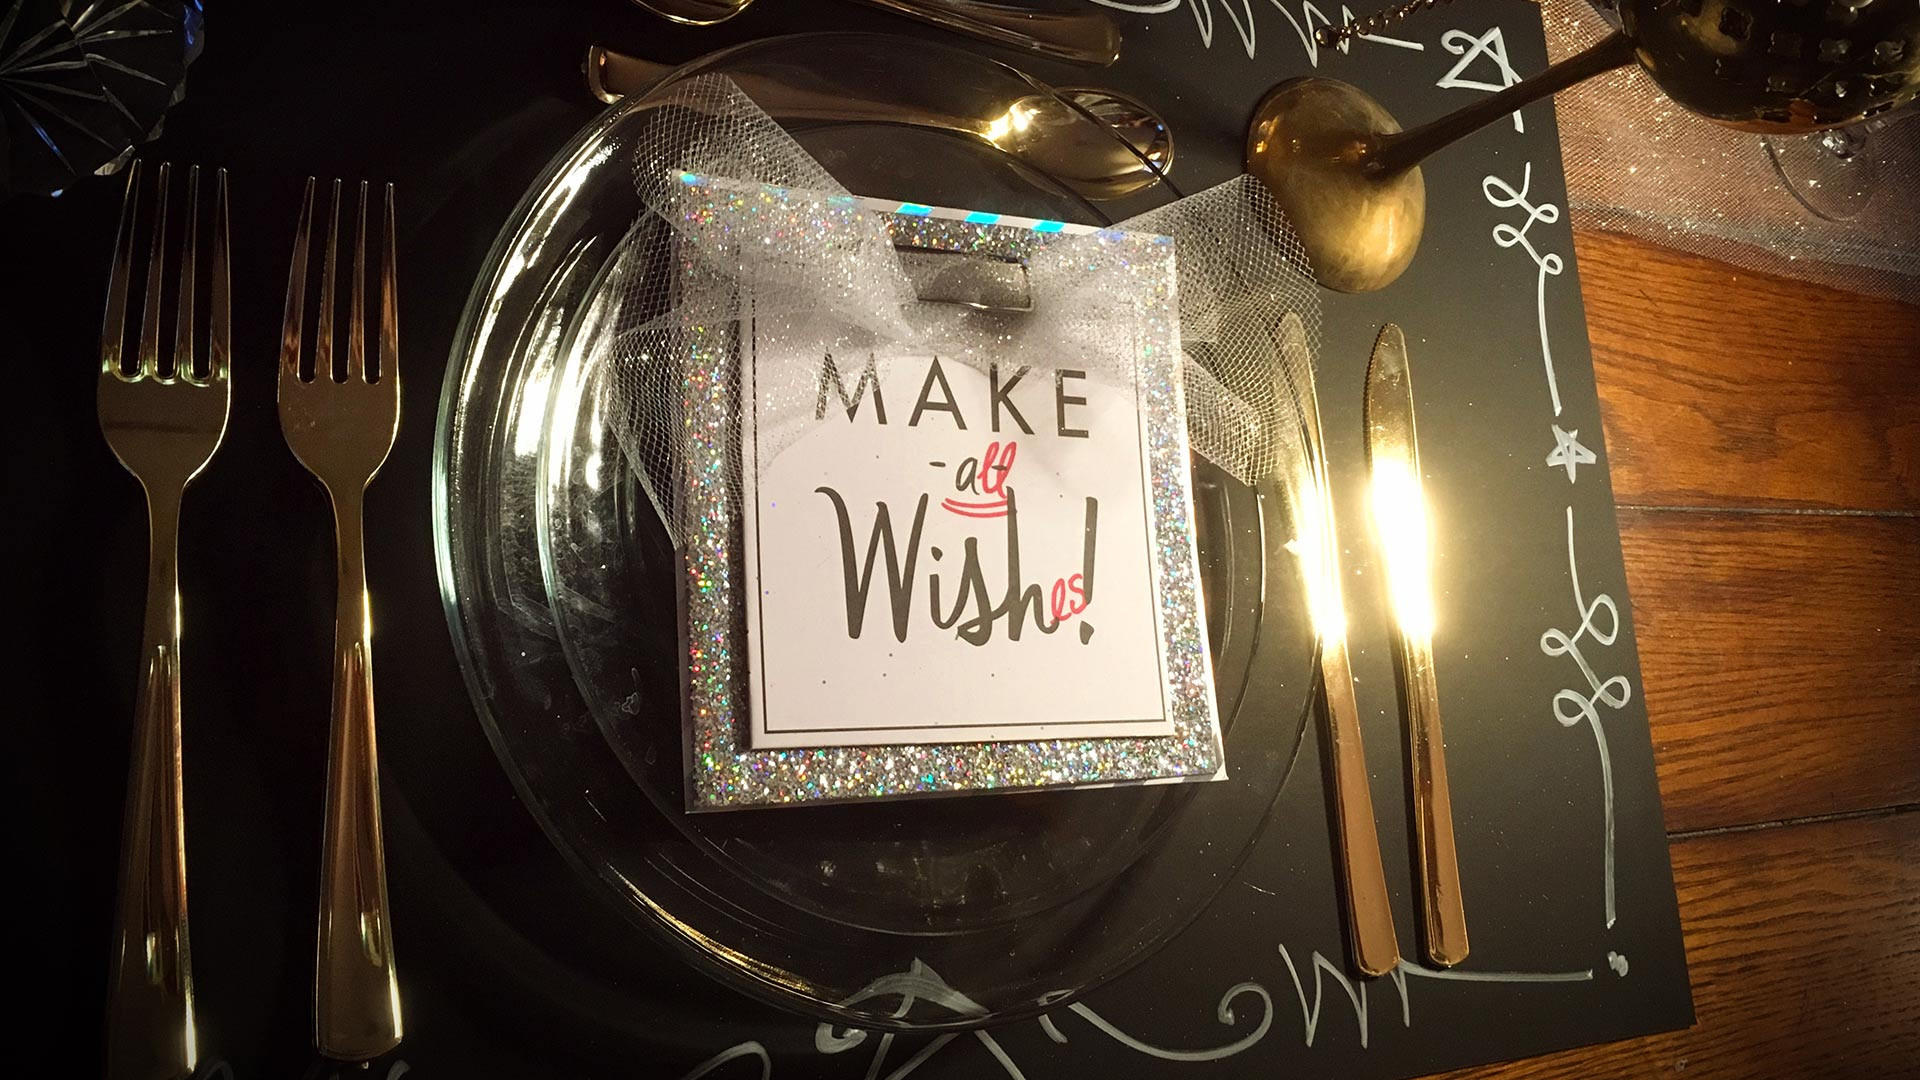 Make All Your Wishes Image